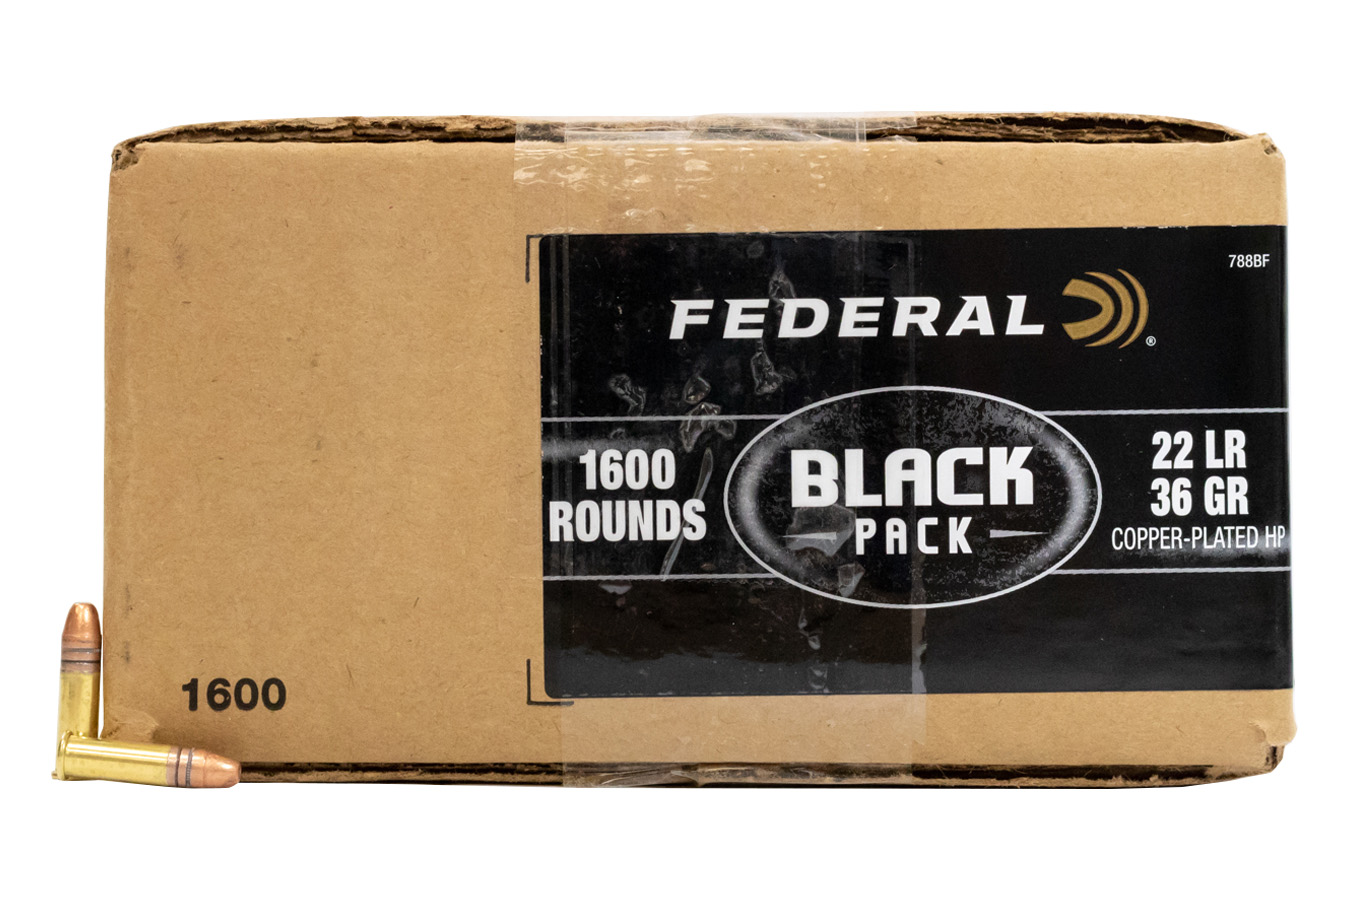 federal 22 lr 36 gr copper plated hollow point black pack 1600 box